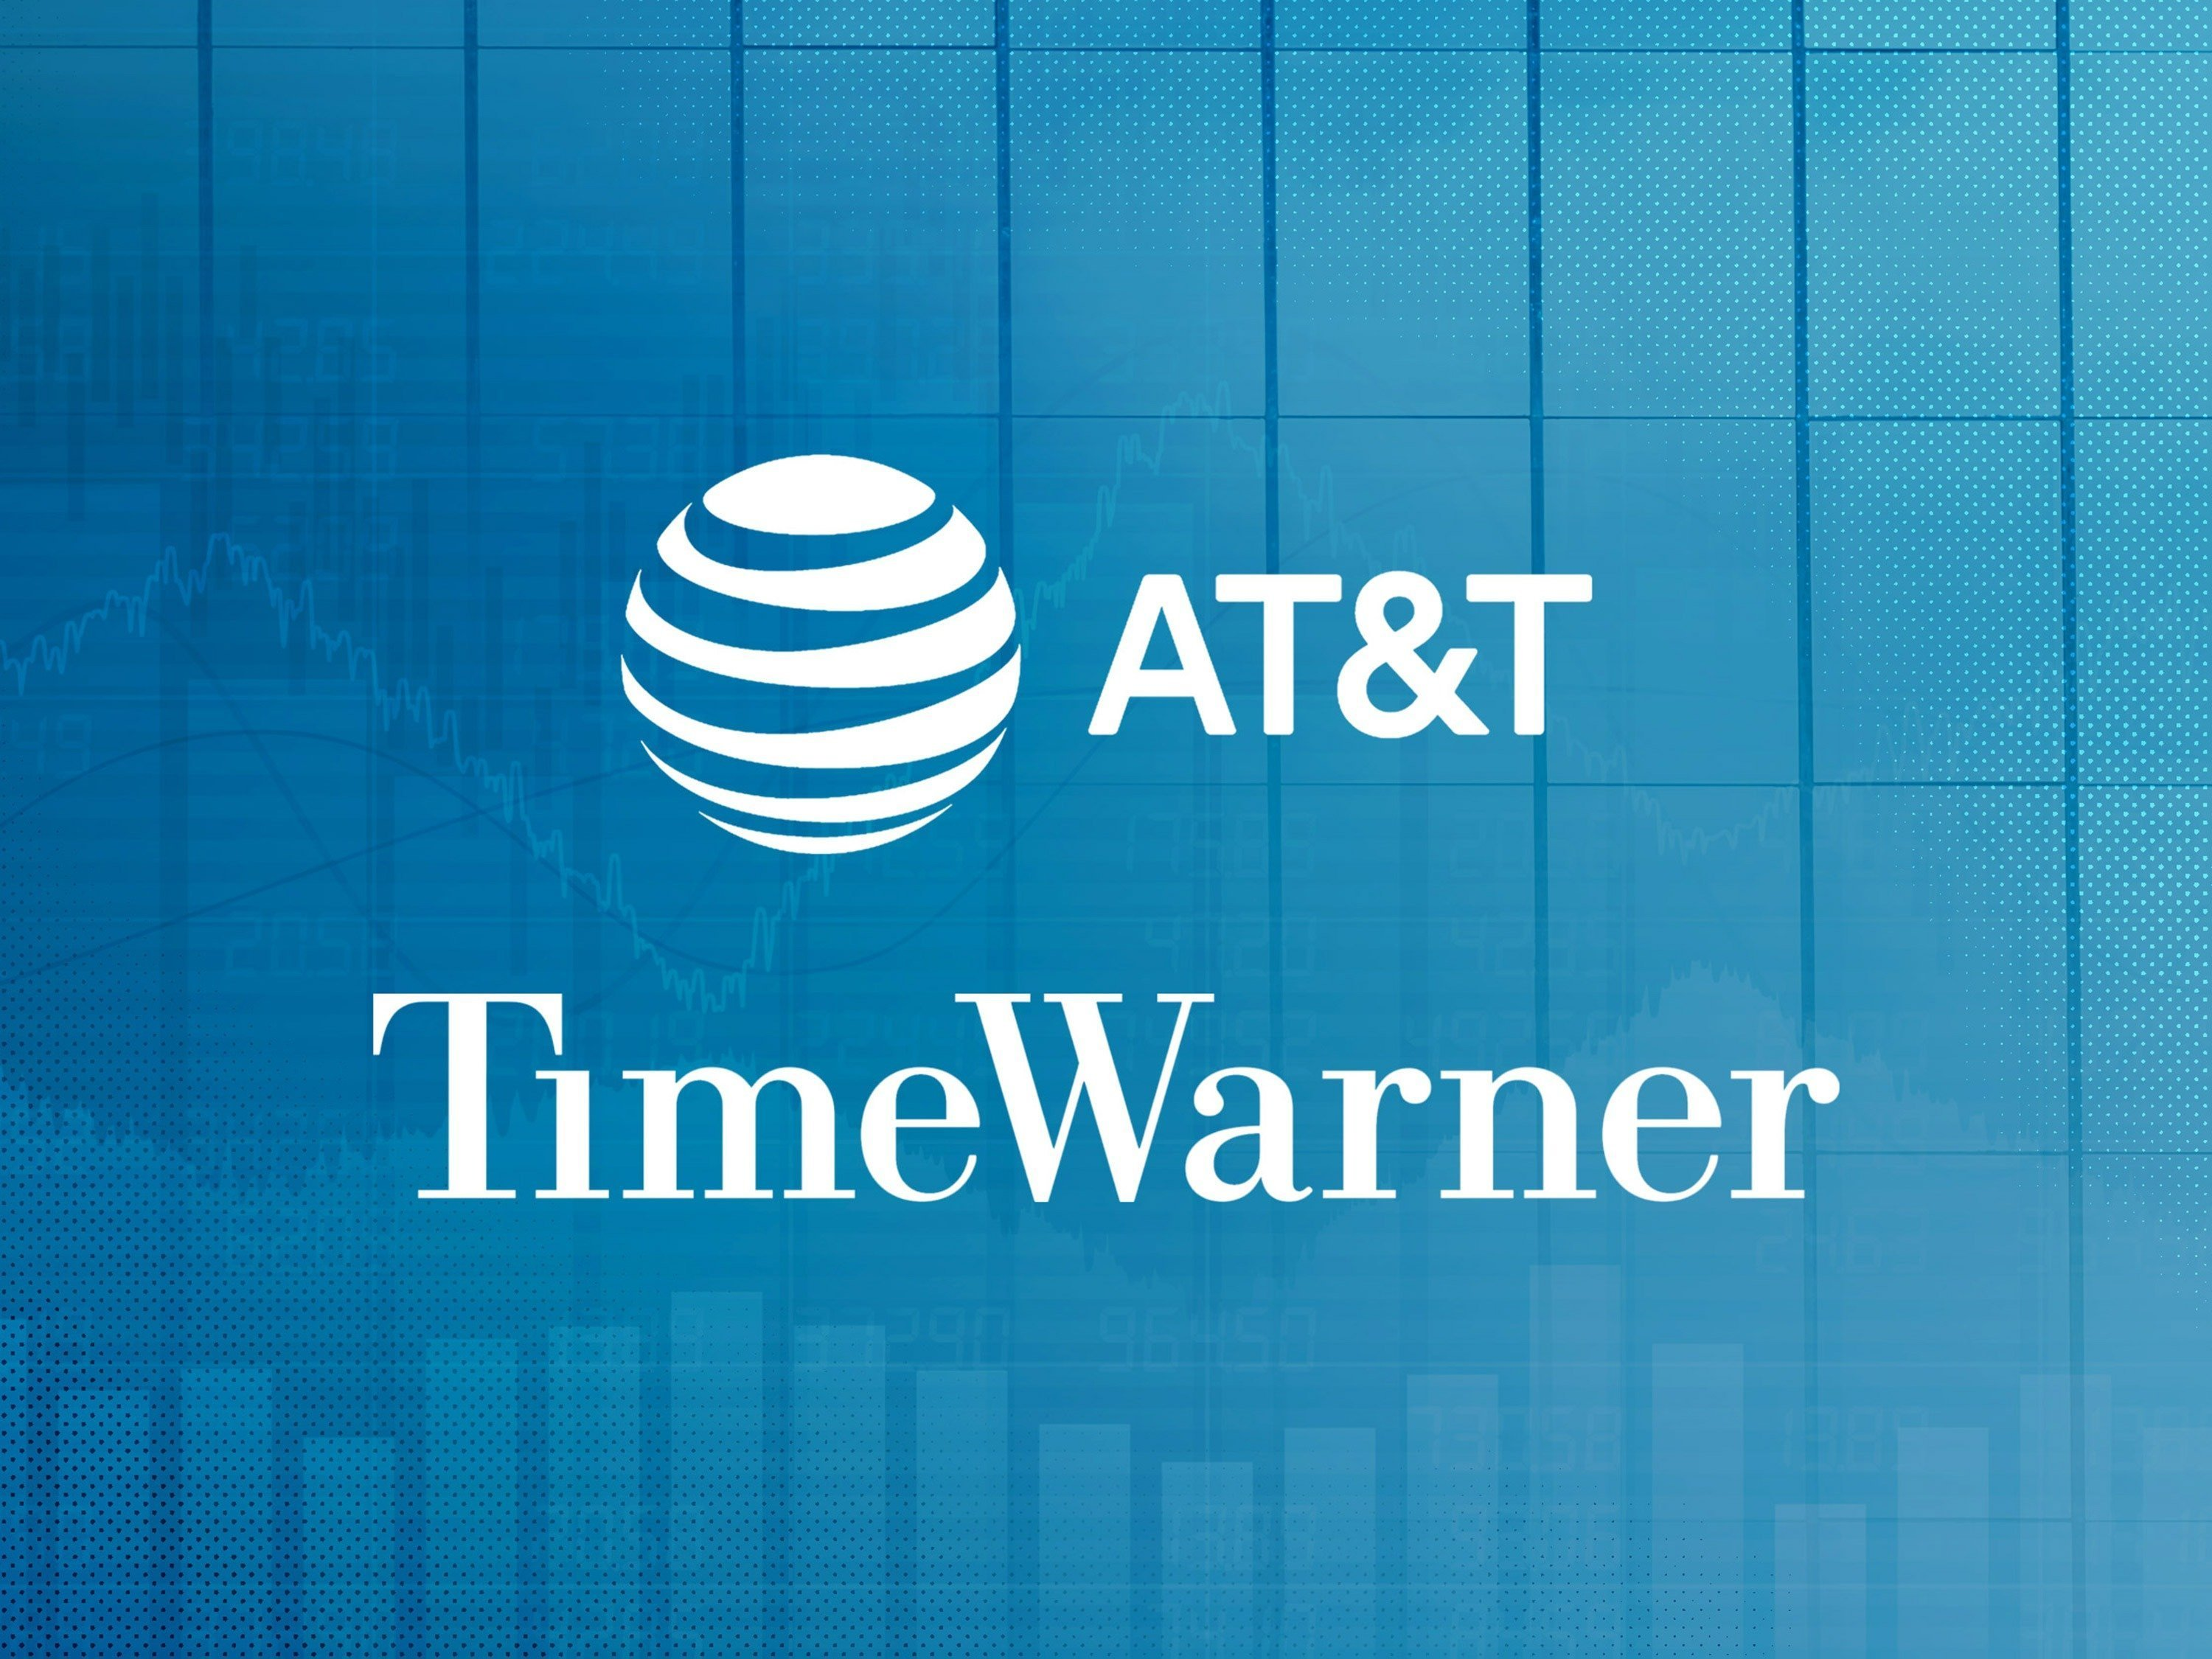 Stock to Watch: Time Warner Inc. (TWX)